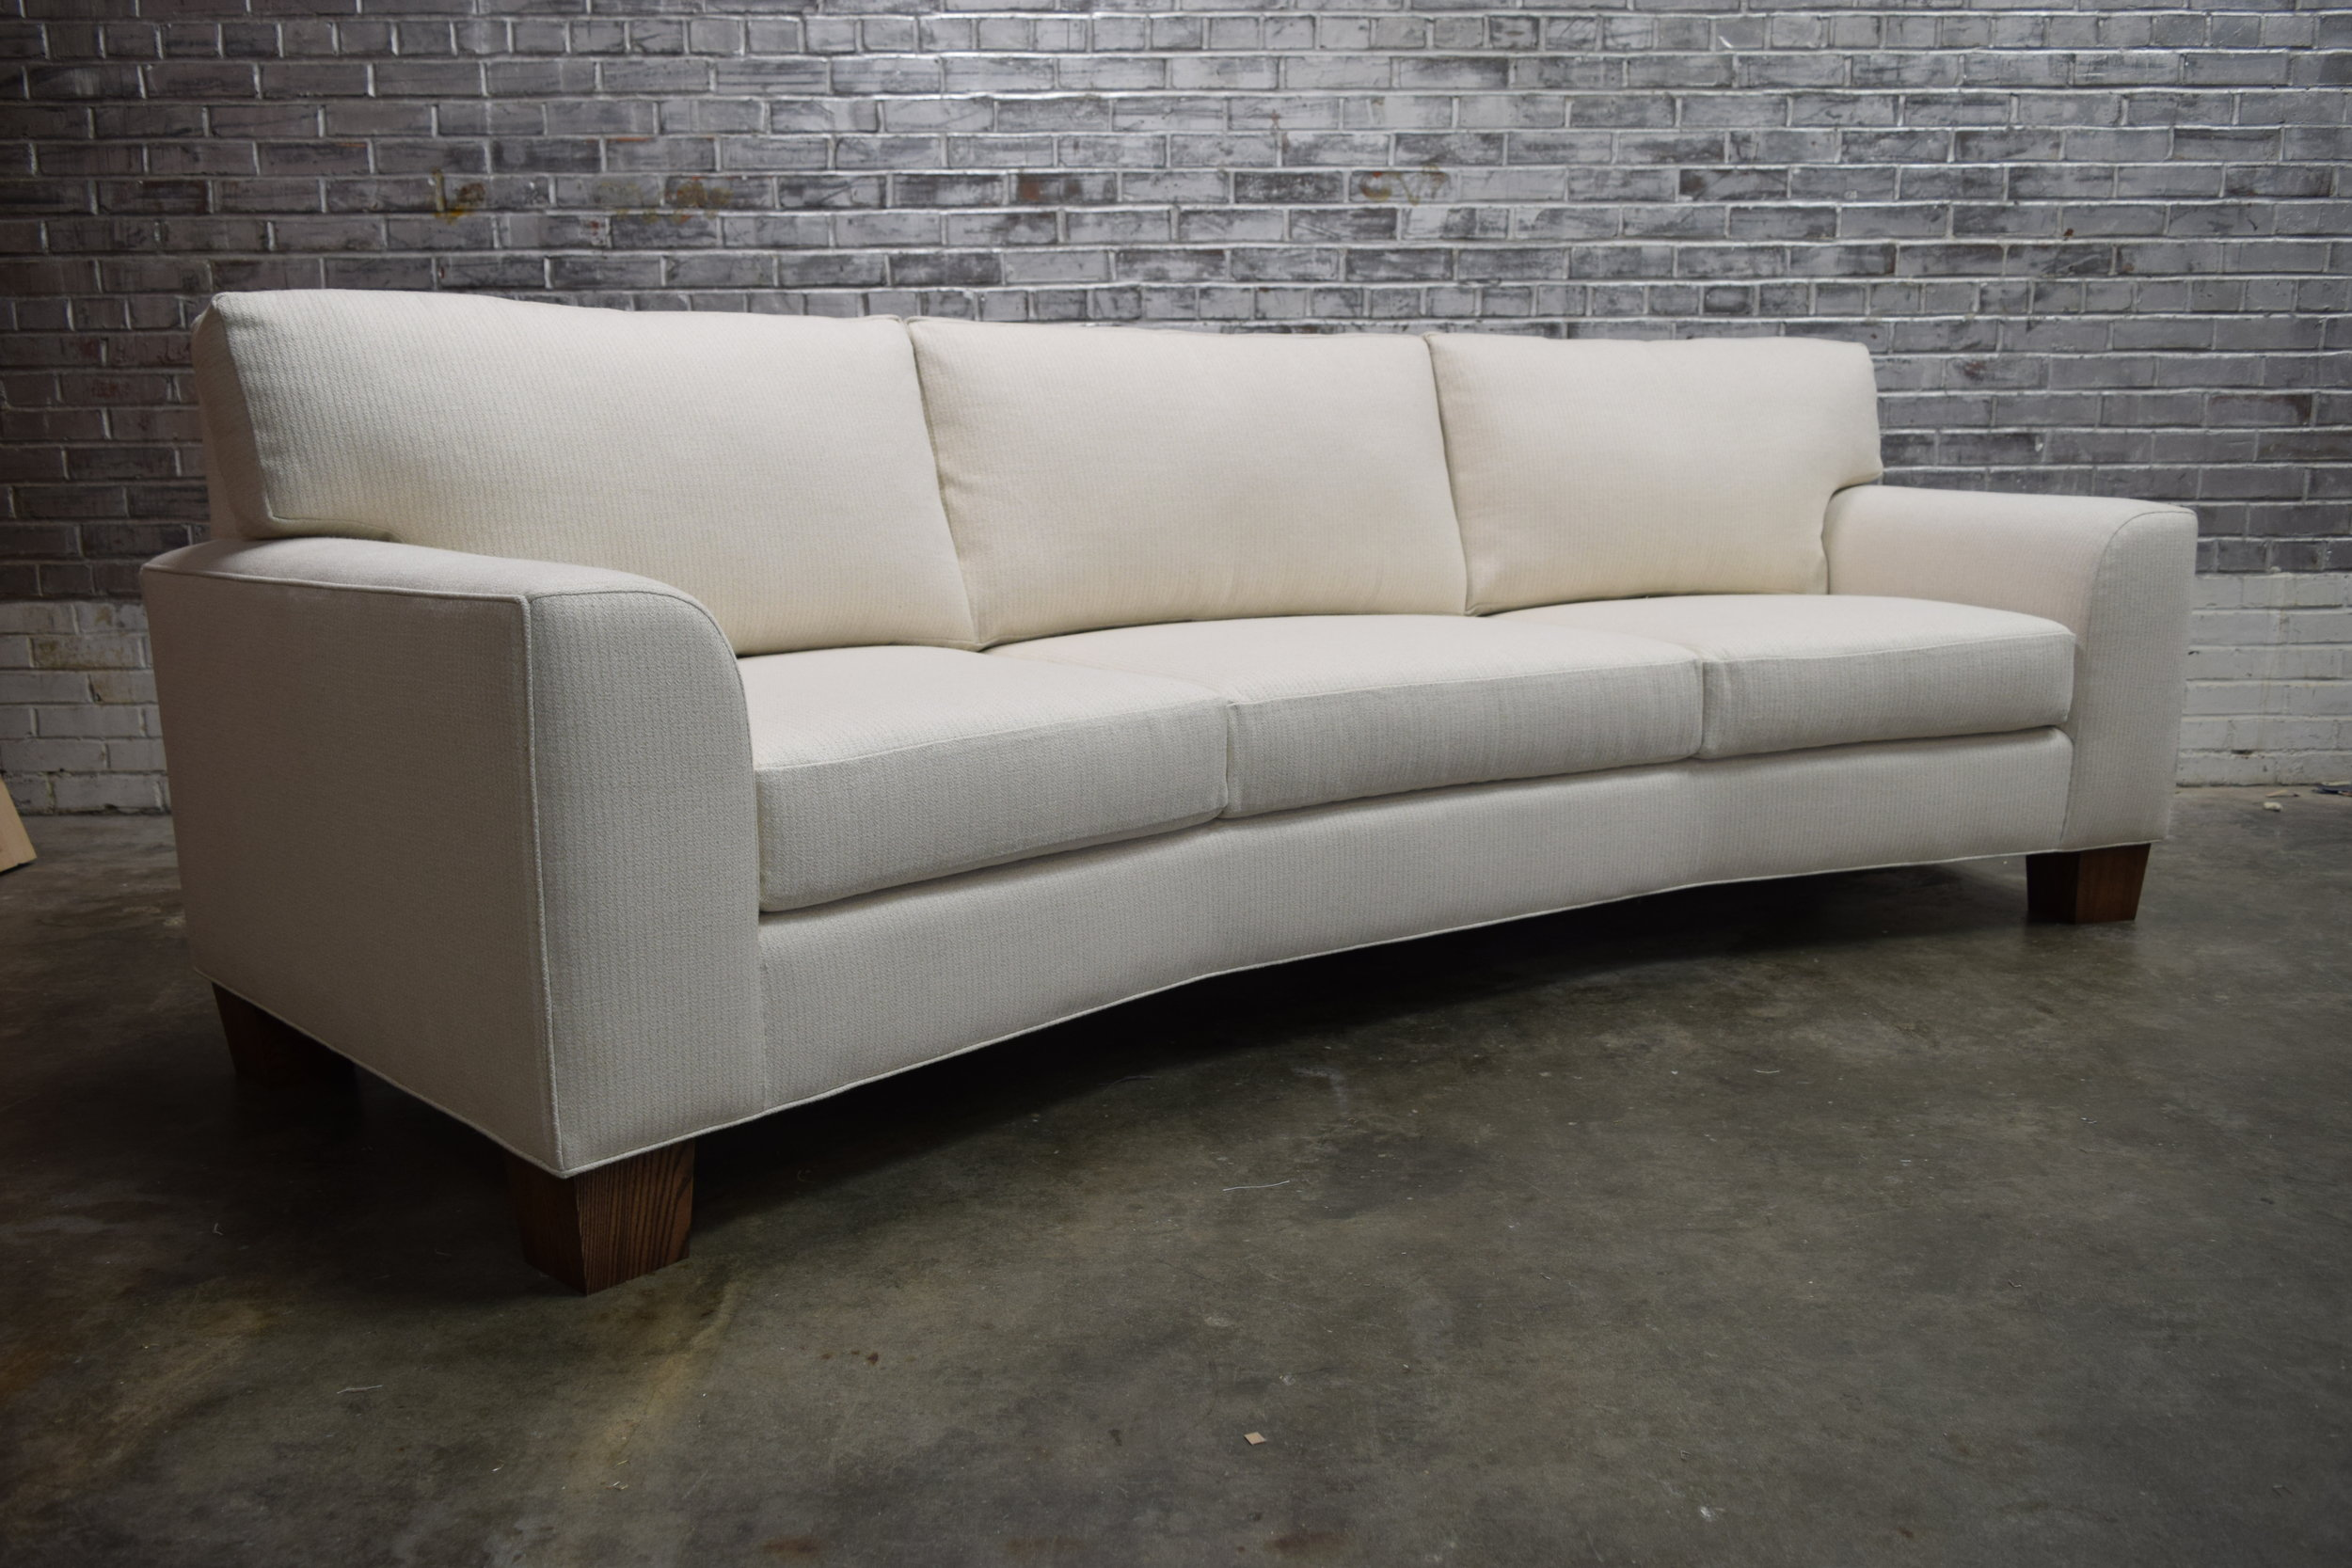 rounded couch.jpg